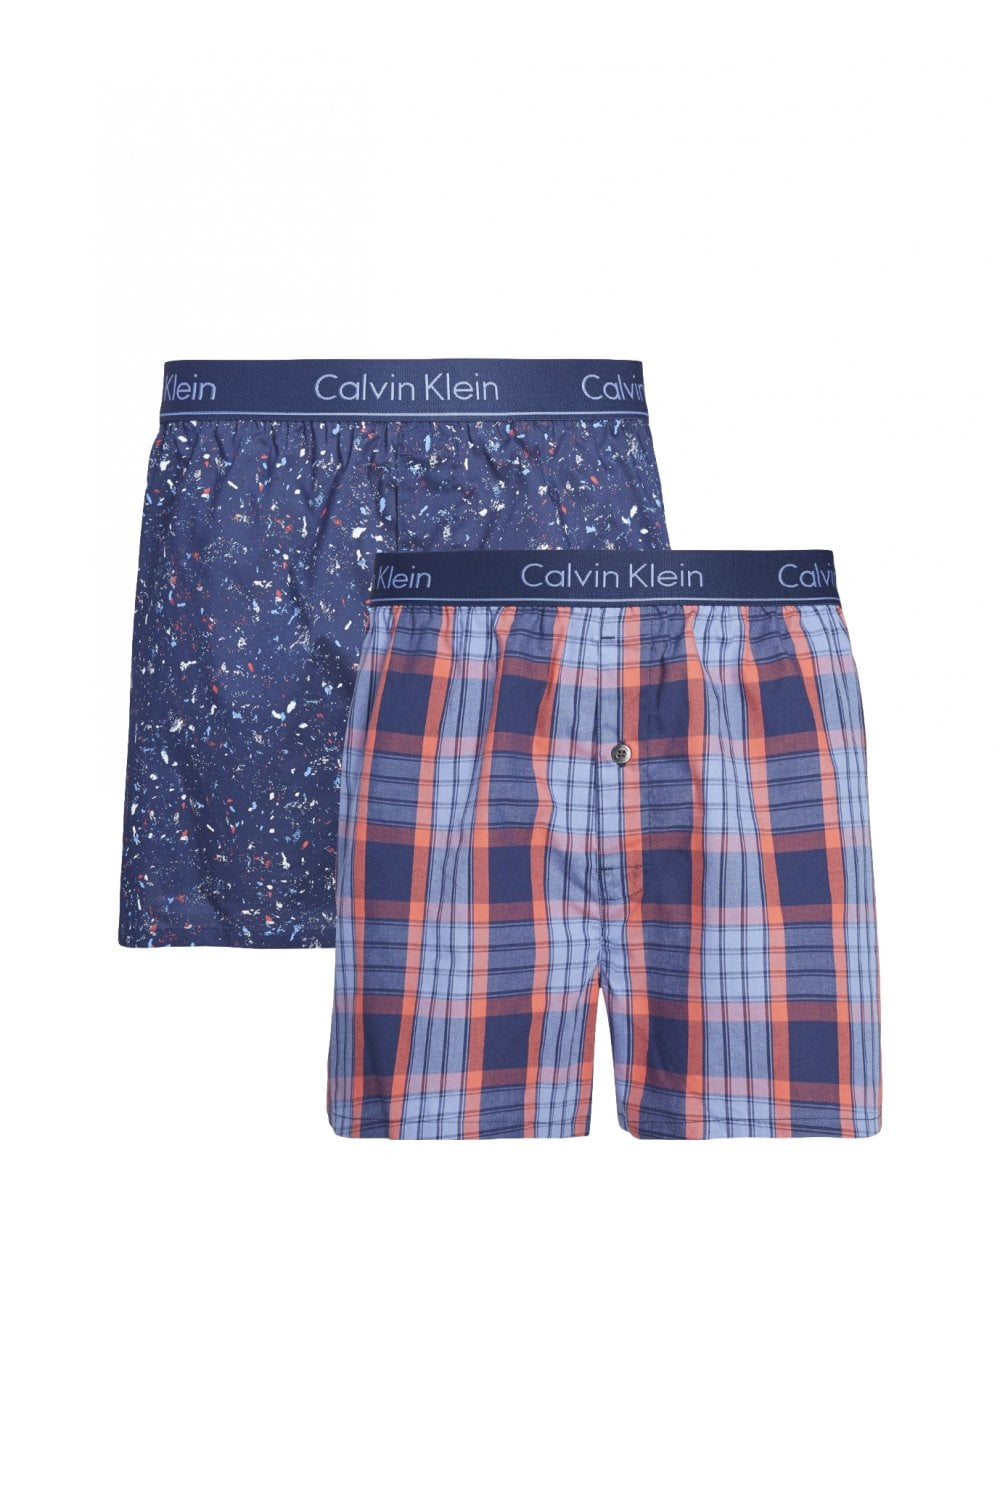 50e74c6e2171 Calvin Klein Slim Fit Boxer 2 Pack - Party Print/Grid Plaid Mediev ...